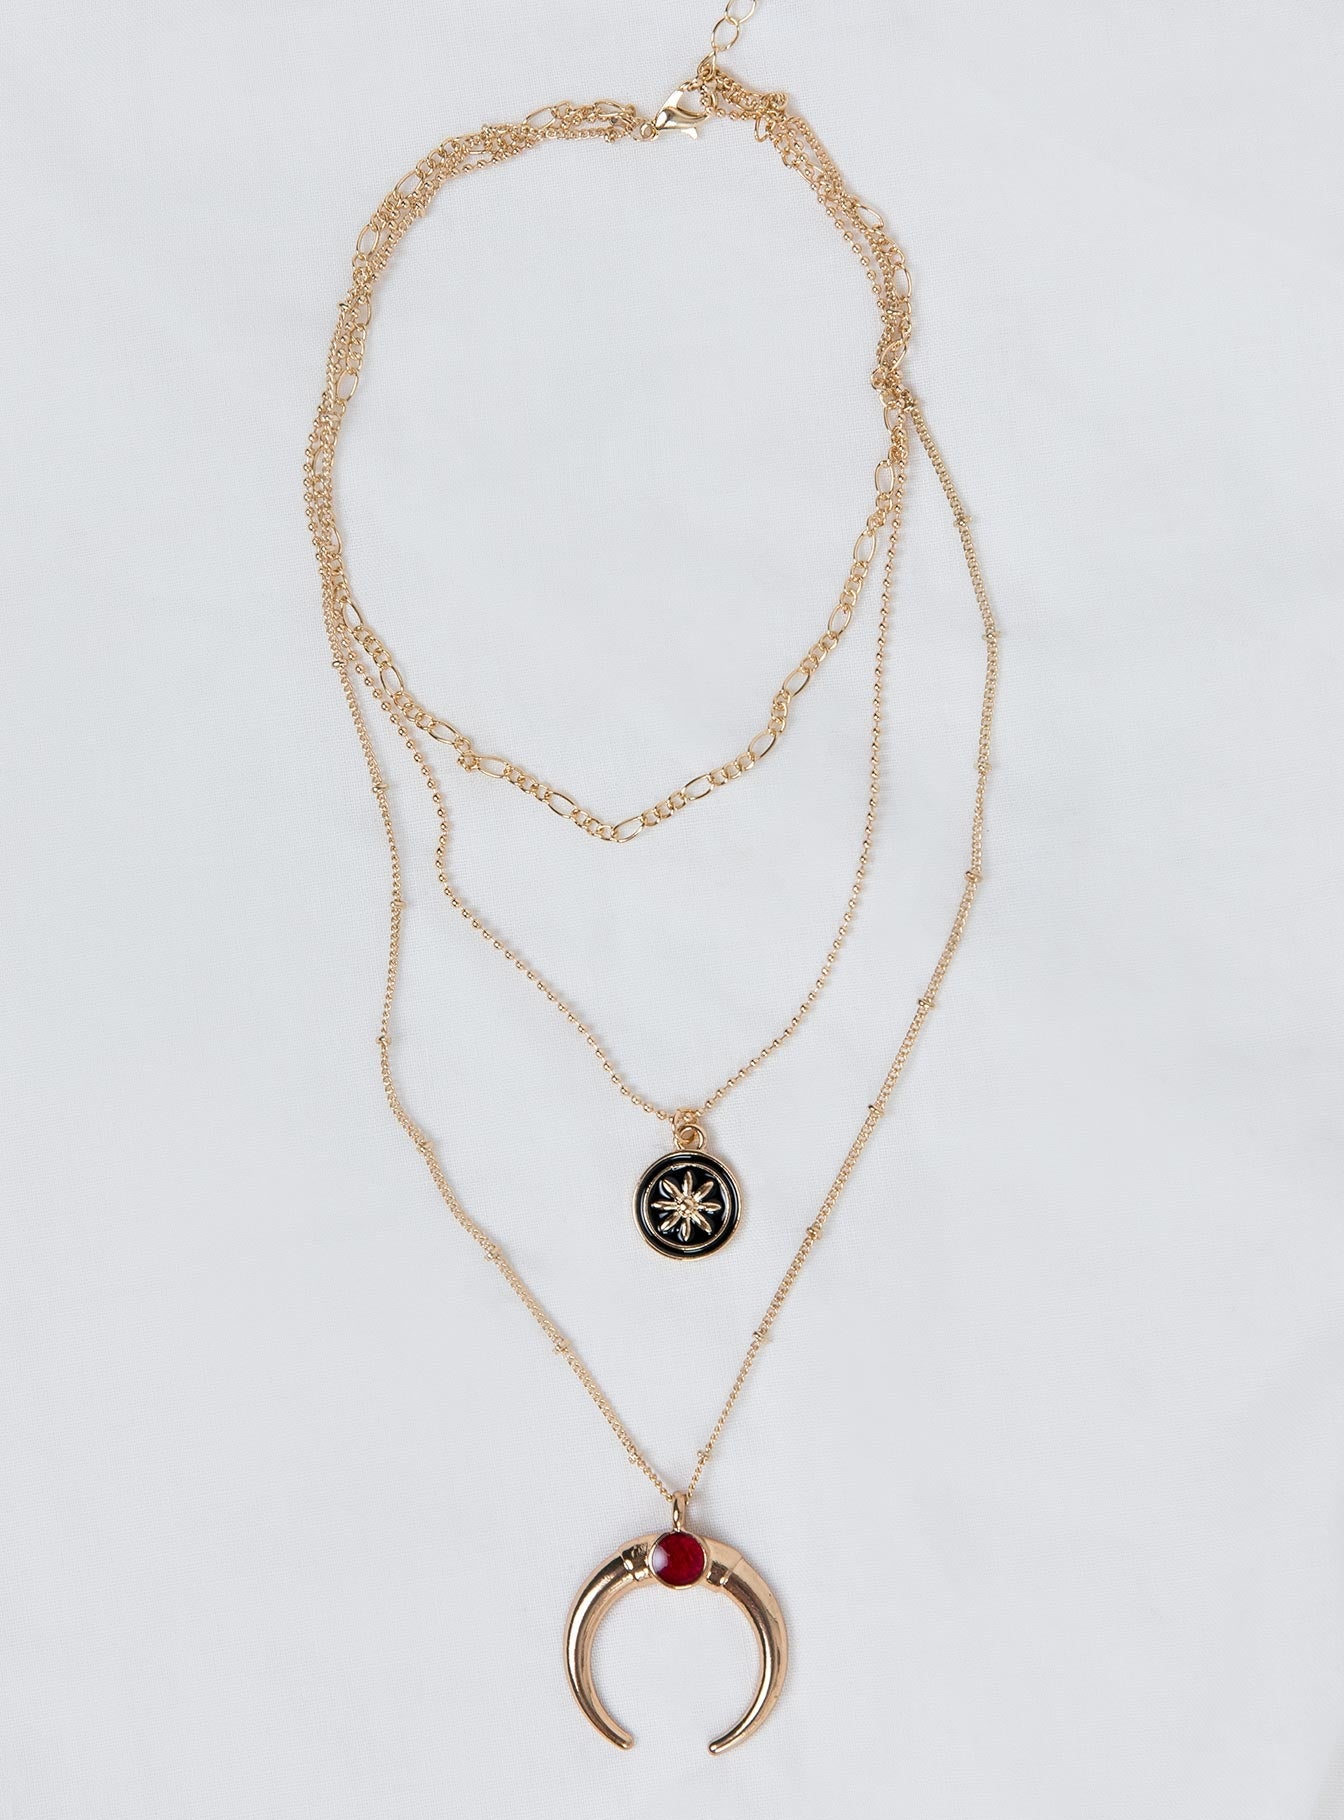 From Eden Layered Necklace Gold